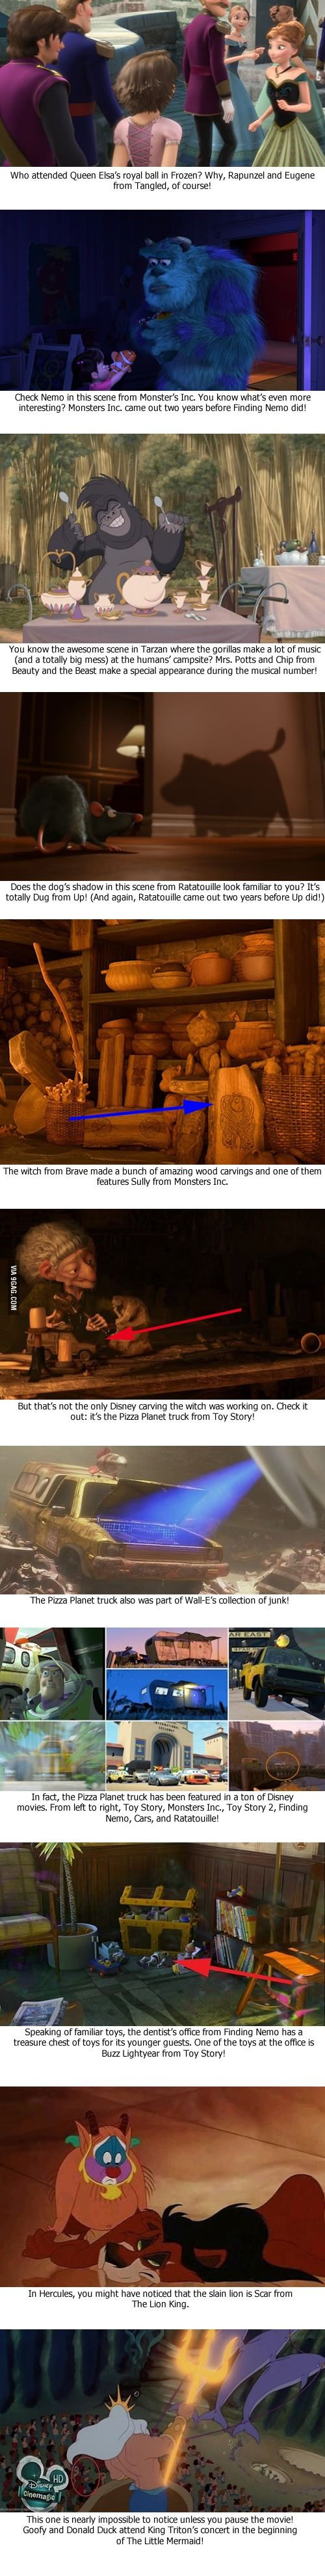 Disney: Mindblowing Messages Hidden In Your Favorite Movies!